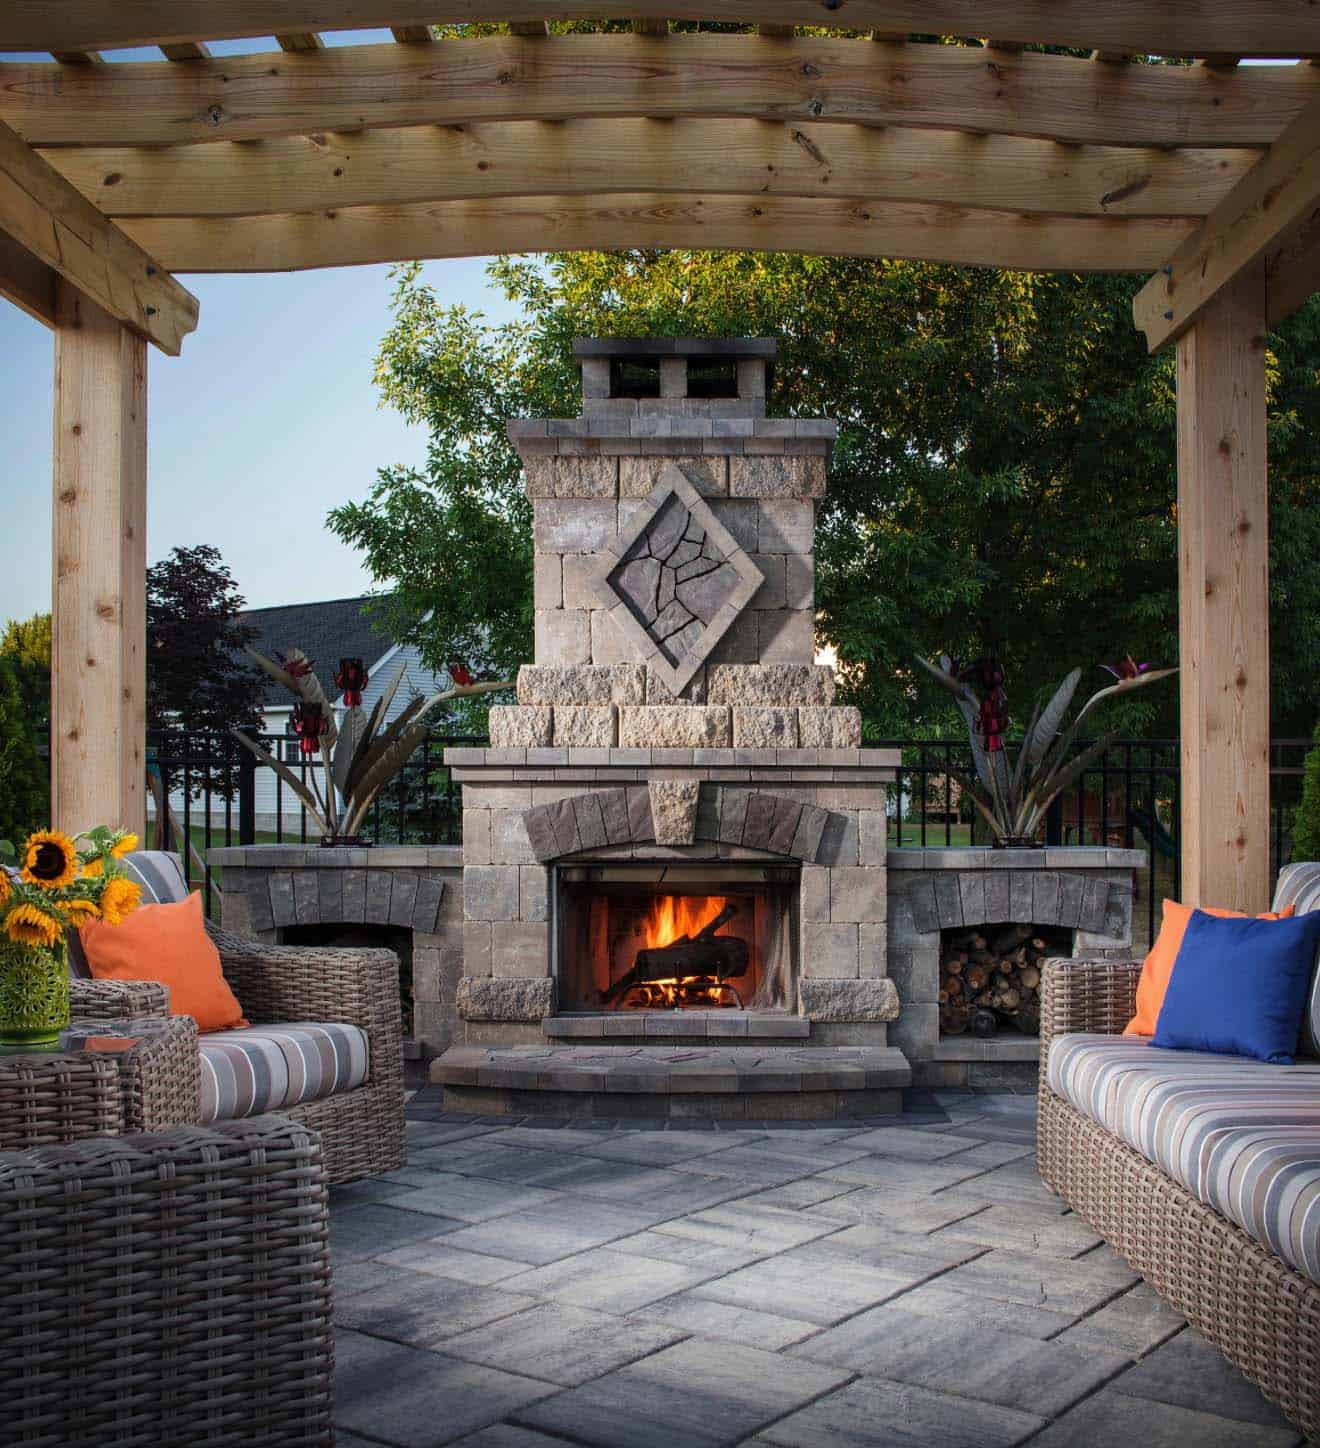 Outdoor Fireplace Design 30 Irresistible Outdoor Fireplace Ideas that Will Leave